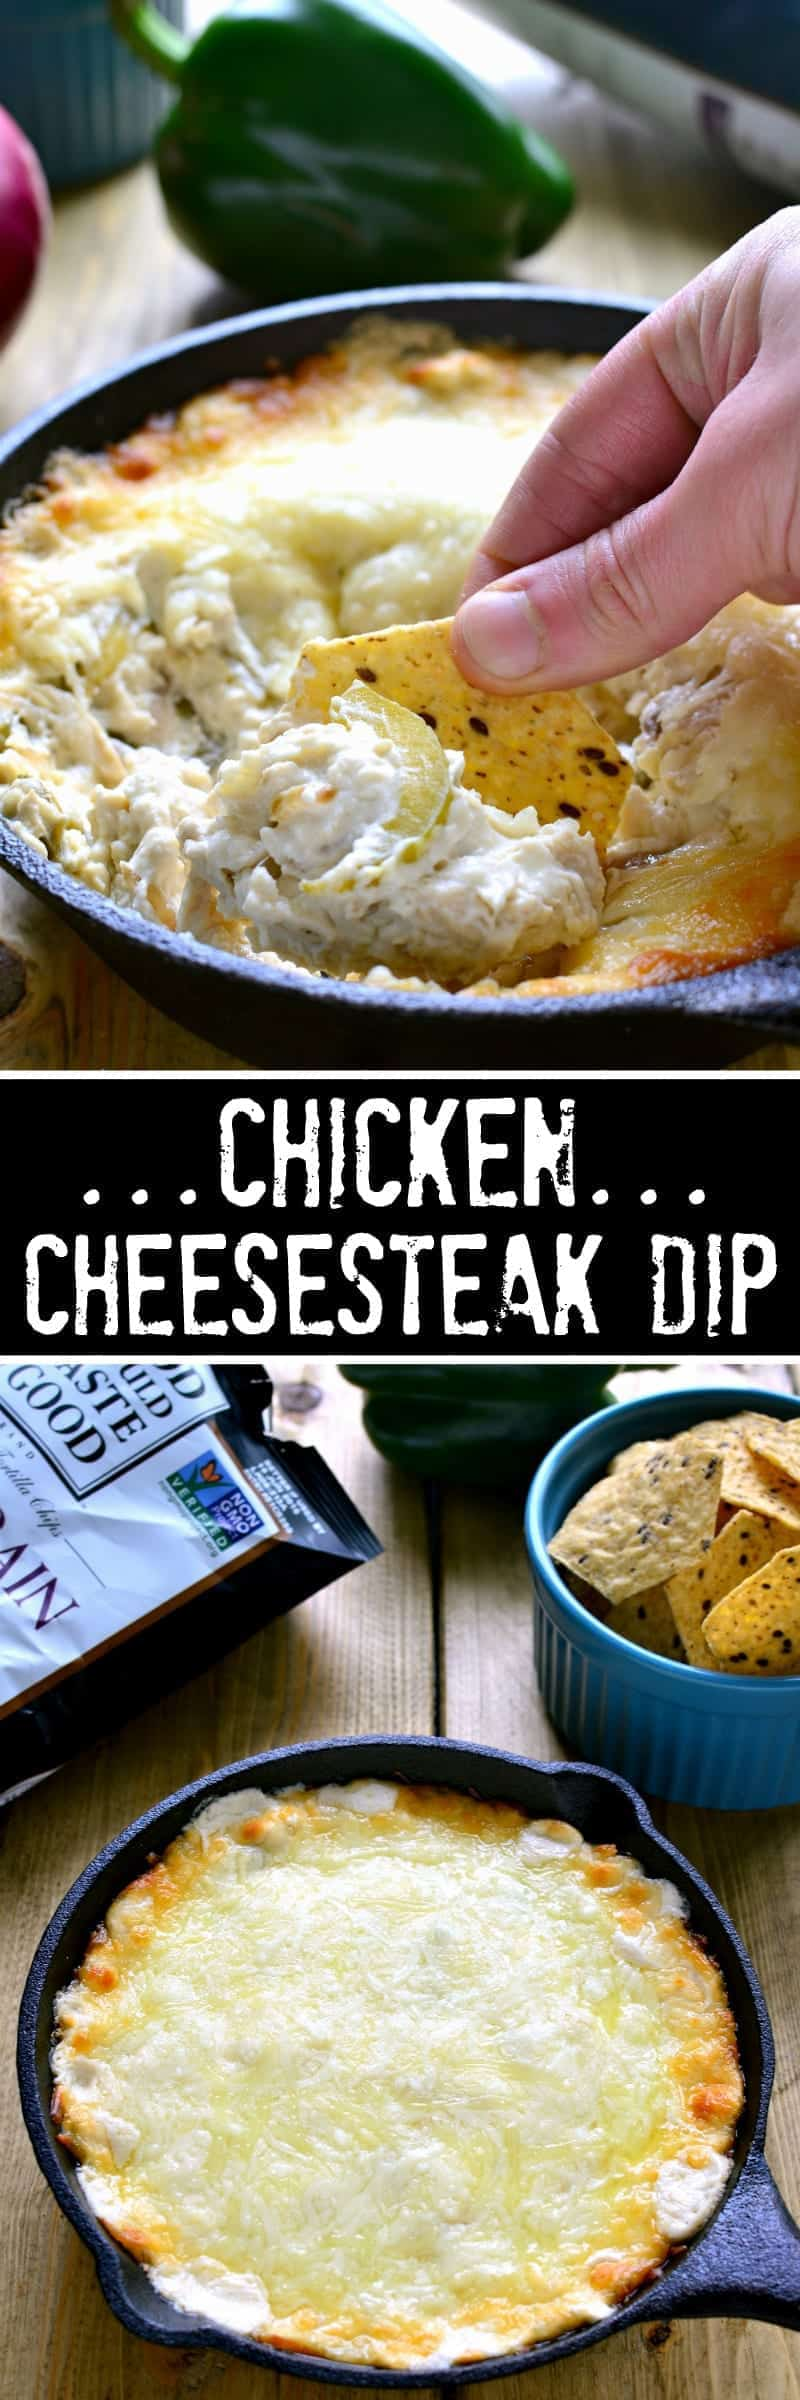 Chicken Cheesesteak Dip is ooey, gooey, and loaded with all the flavors of Chicken Cheesesteaks! Perfect for game day or summer entertaining, this dip is sure to become a new favorite!